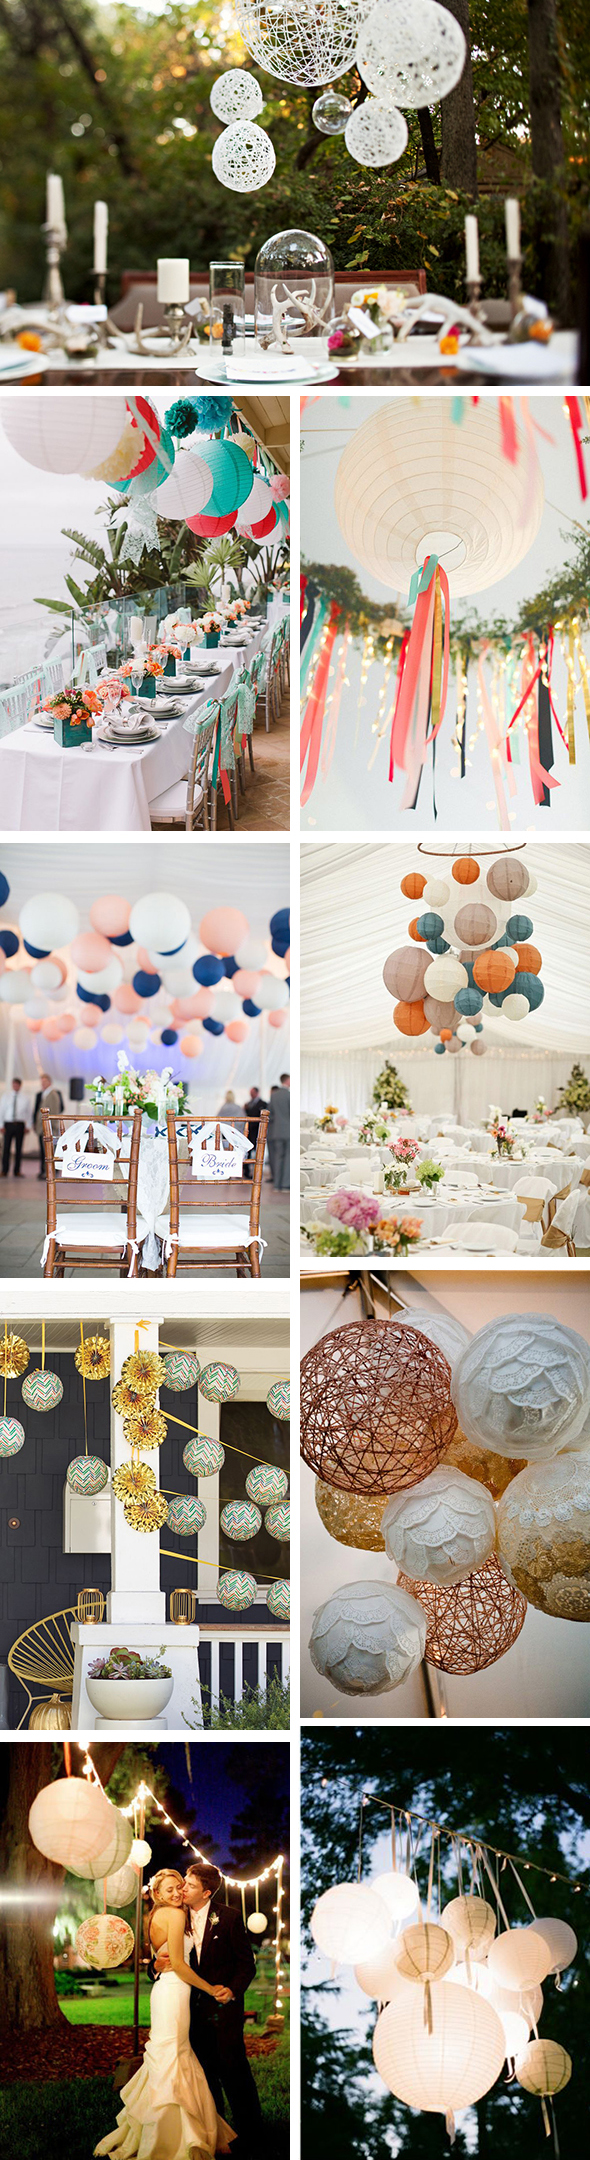 lantern wedding ideas1 Lantern Wedding Ideas for Lighting Your Space